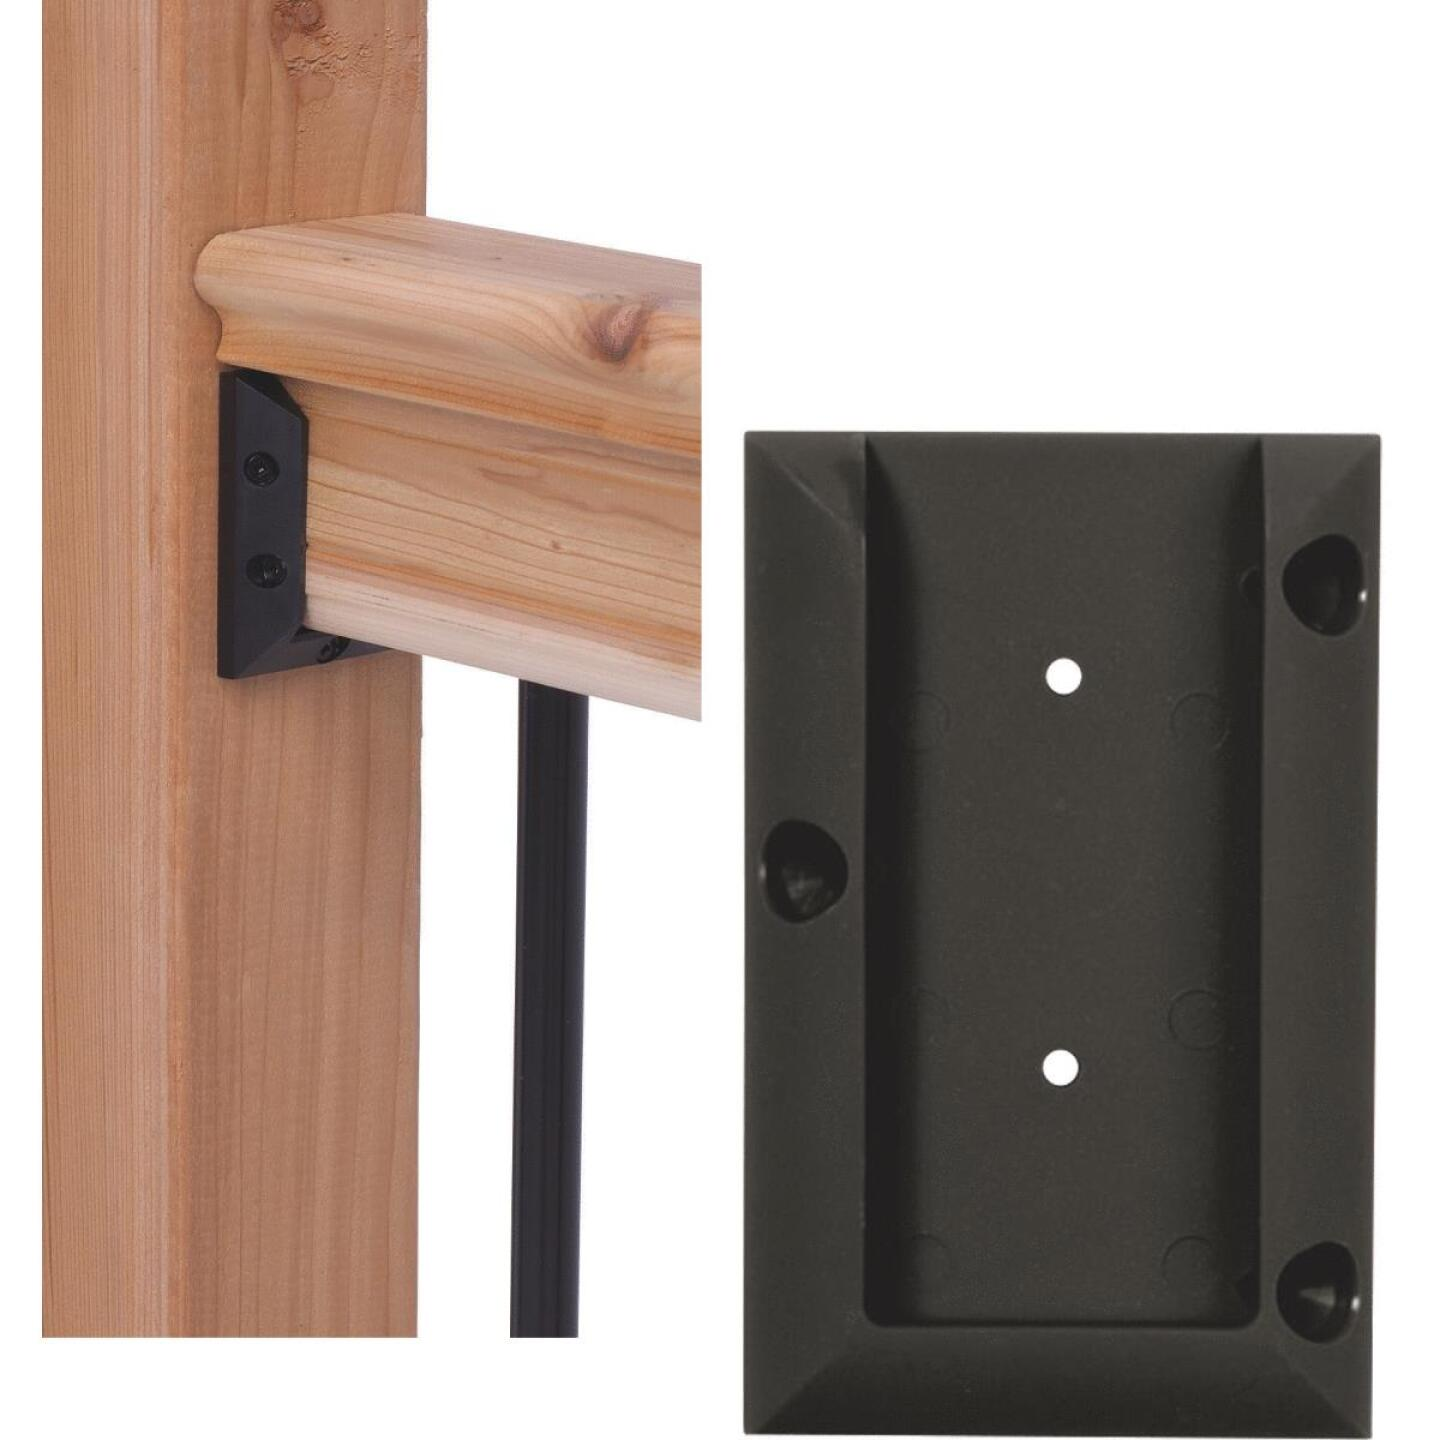 Deckorators Black Plastic Rail Bracket (2-Pack) Image 1